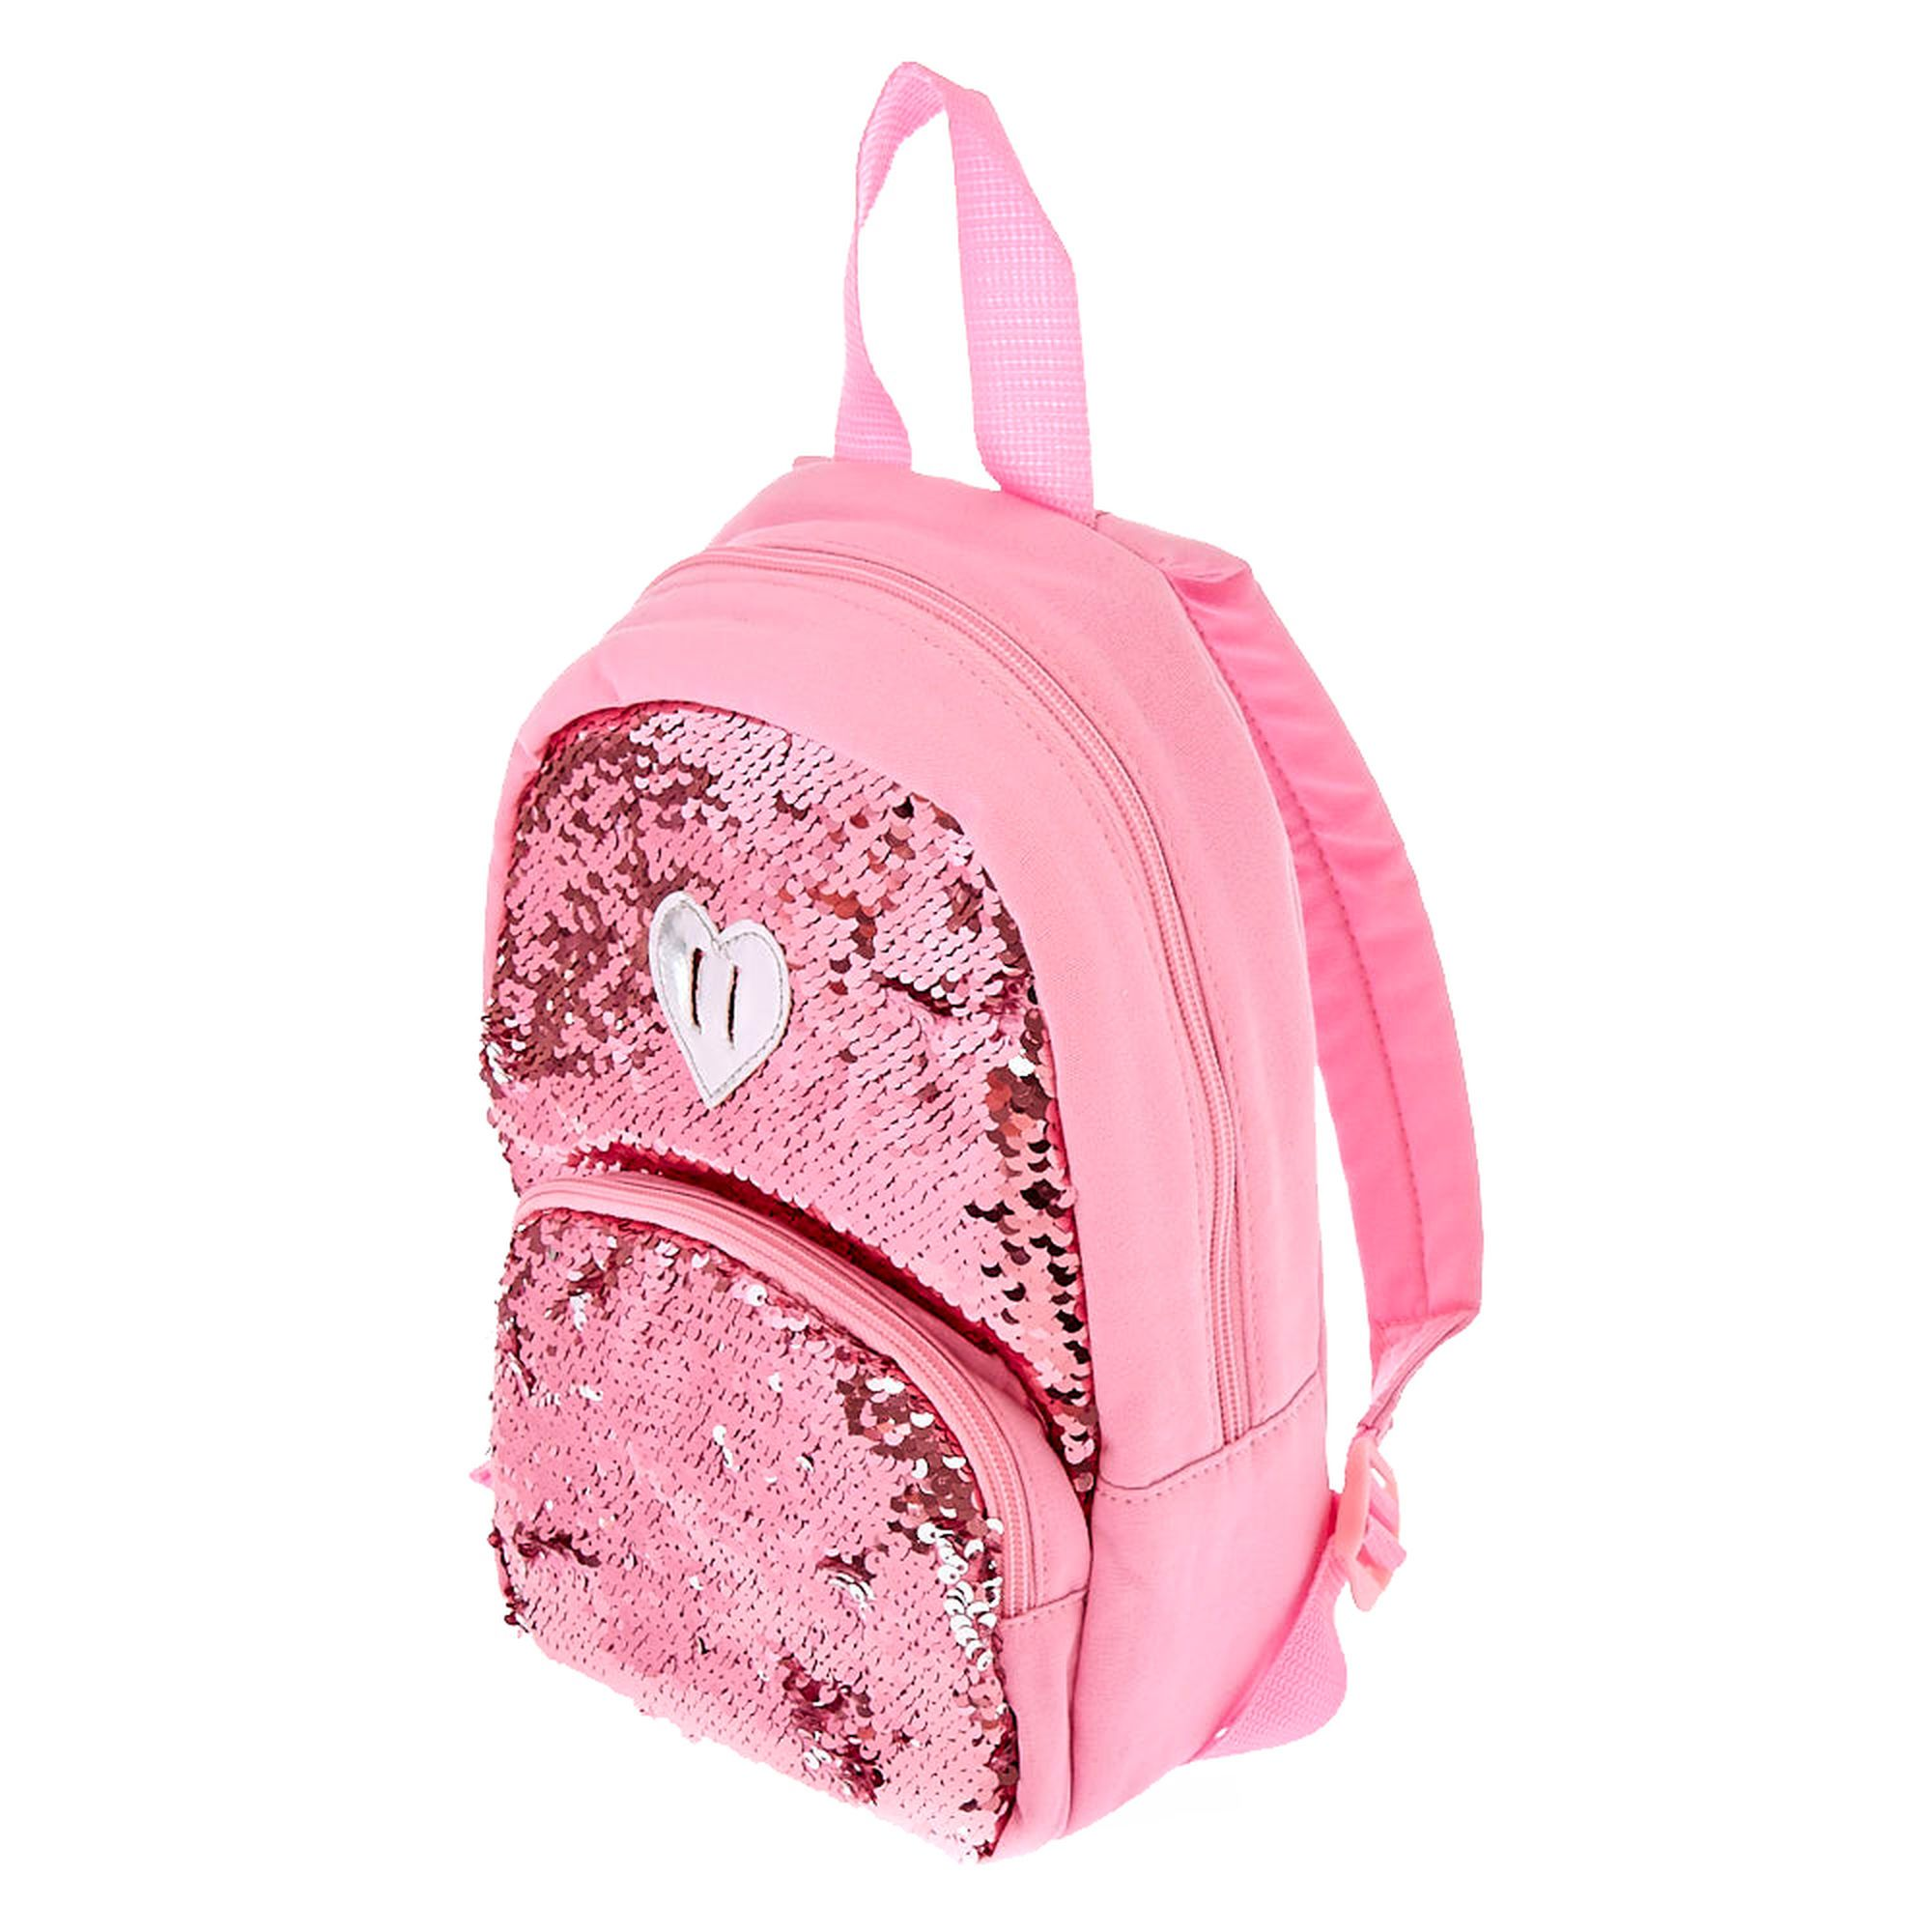 6530df0c6821 Kids Pink to Silver Reversible Sequin Backpack